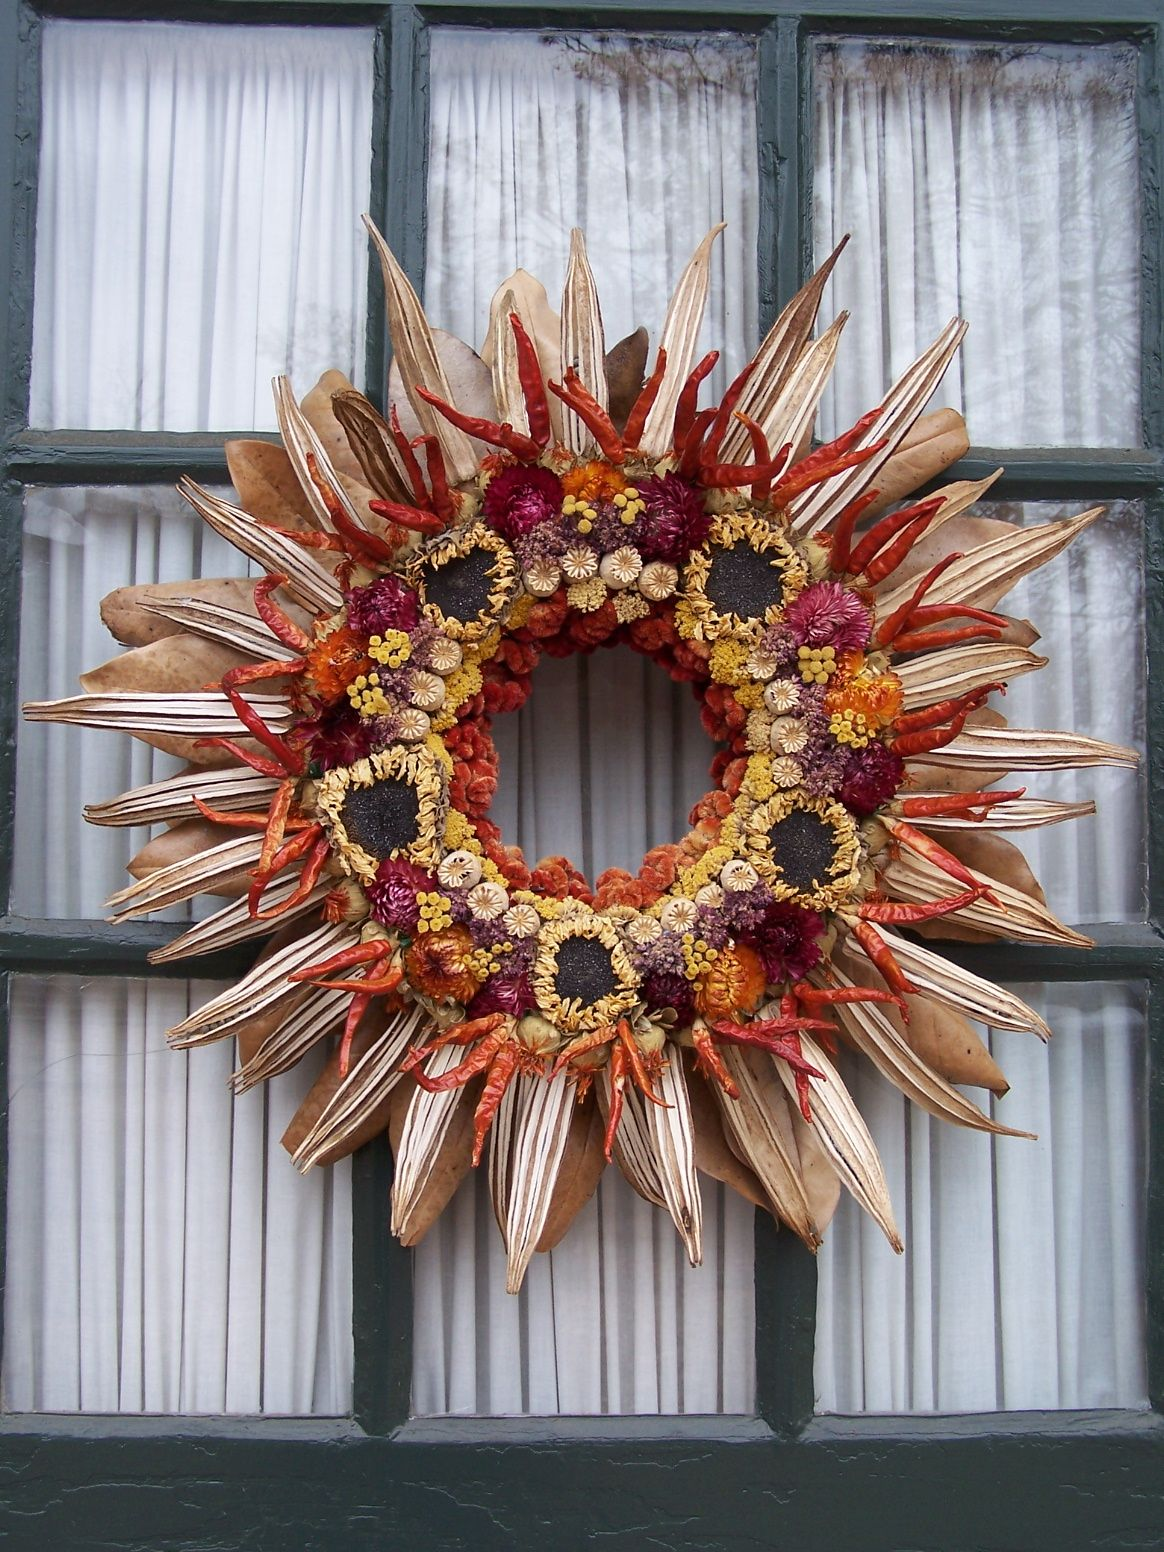 Williamsburg Wreath Wreaths, Fall wreath, Diy crafts